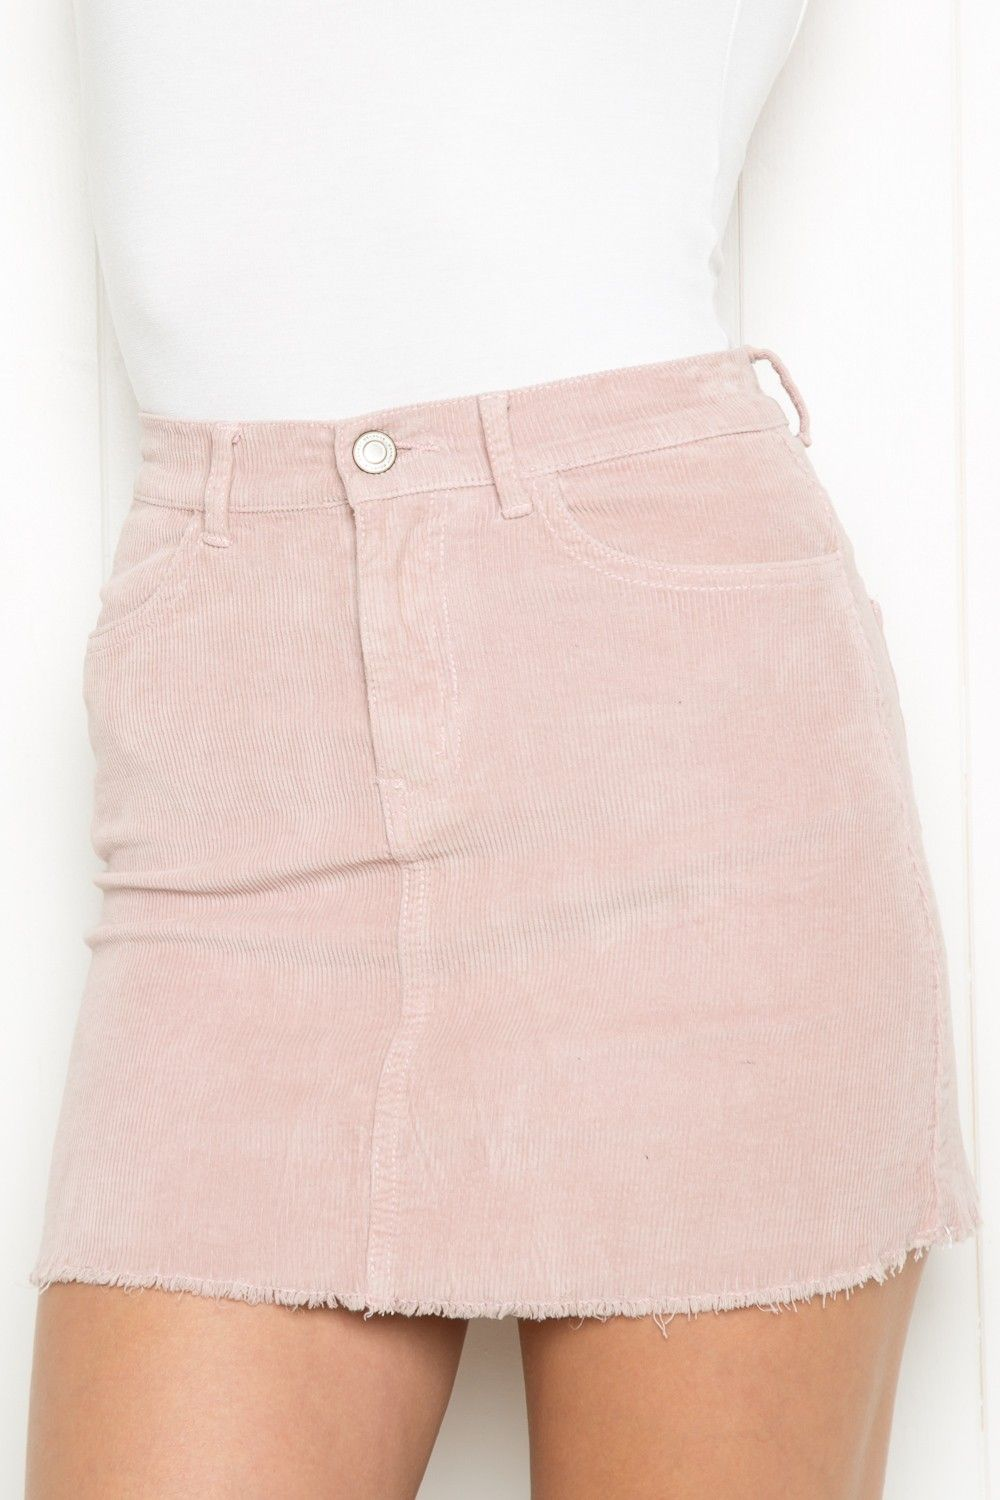 8225436a6 Welcome to Brandy Melville USA | closet love | Corduroy skirt ...